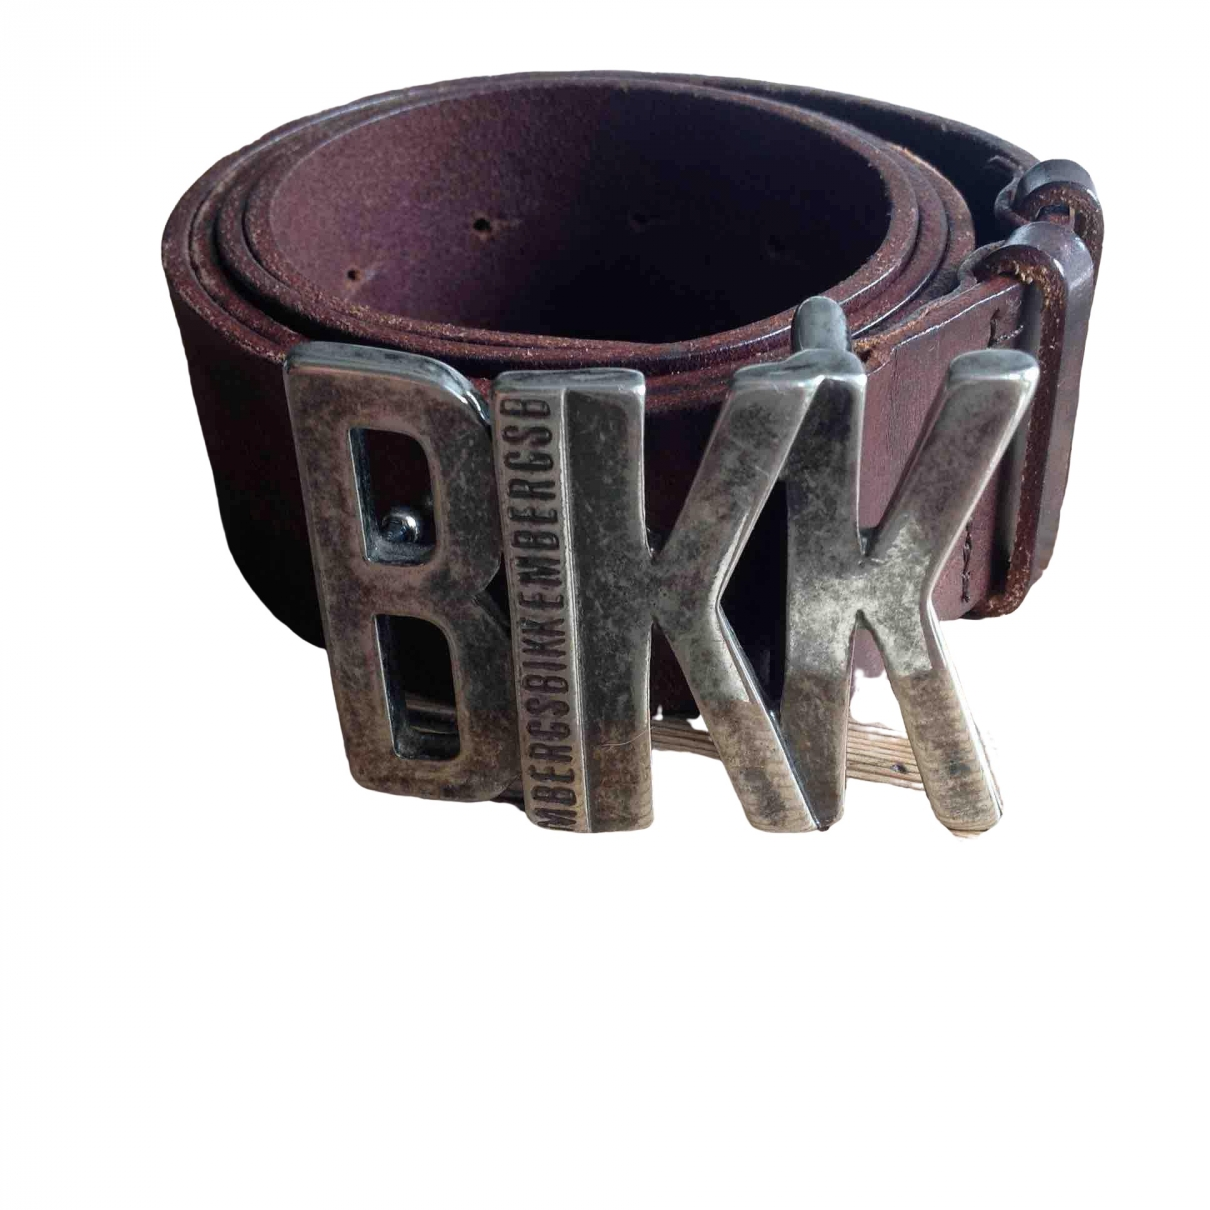 Dirk Bikkembergs \N Brown Leather belt for Men M international